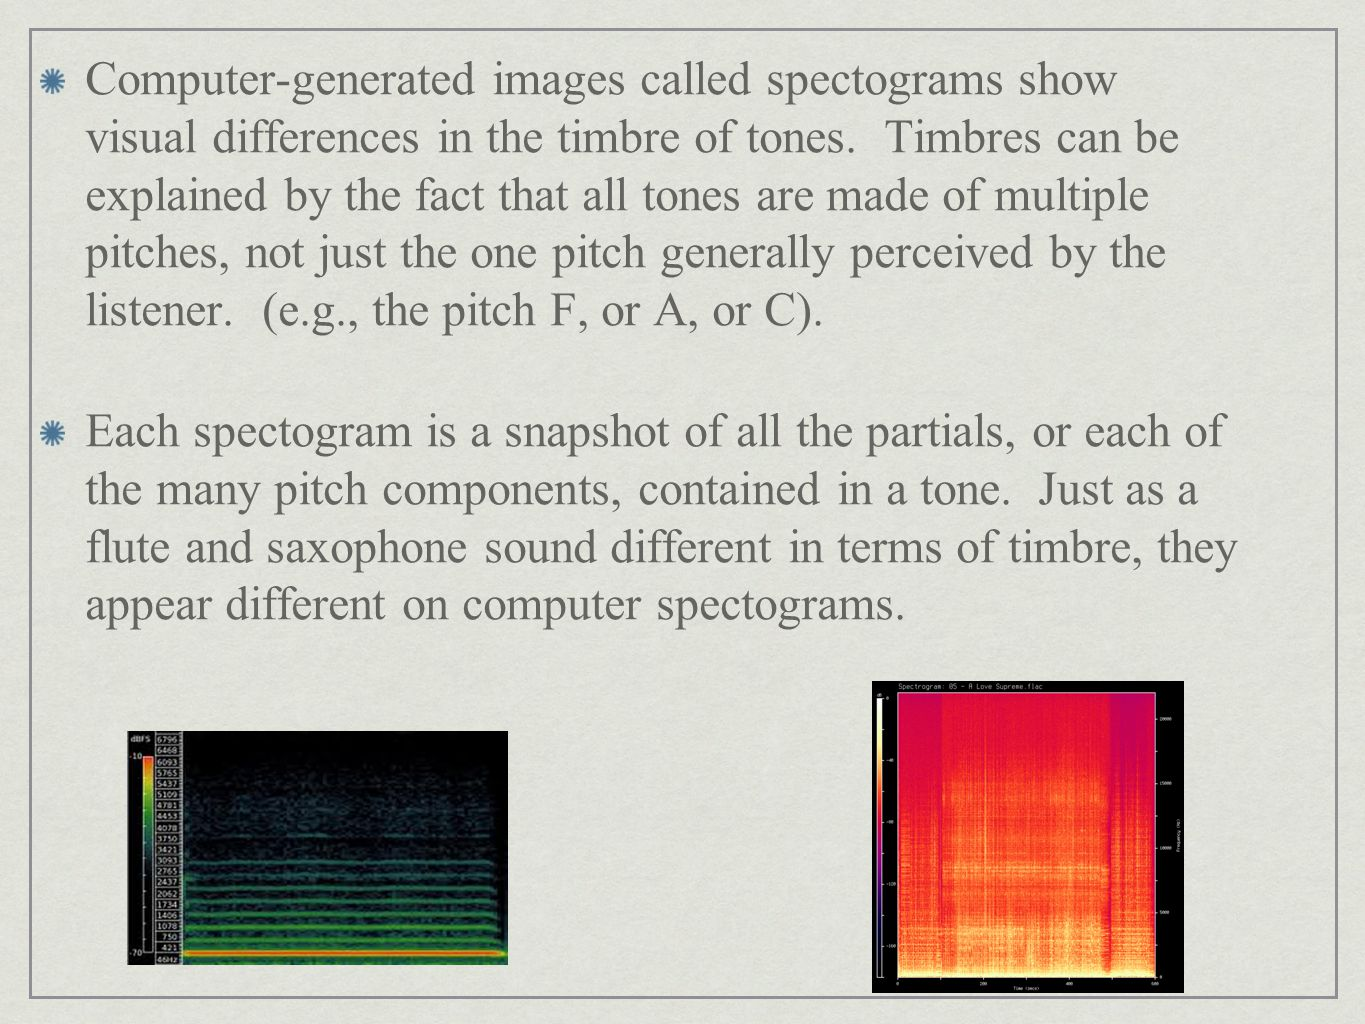 Computer-generated images called spectograms show visual differences in the timbre of tones. Timbres can be explained by the fact that all tones are made of multiple pitches, not just the one pitch generally perceived by the listener. (e.g., the pitch F, or A, or C).